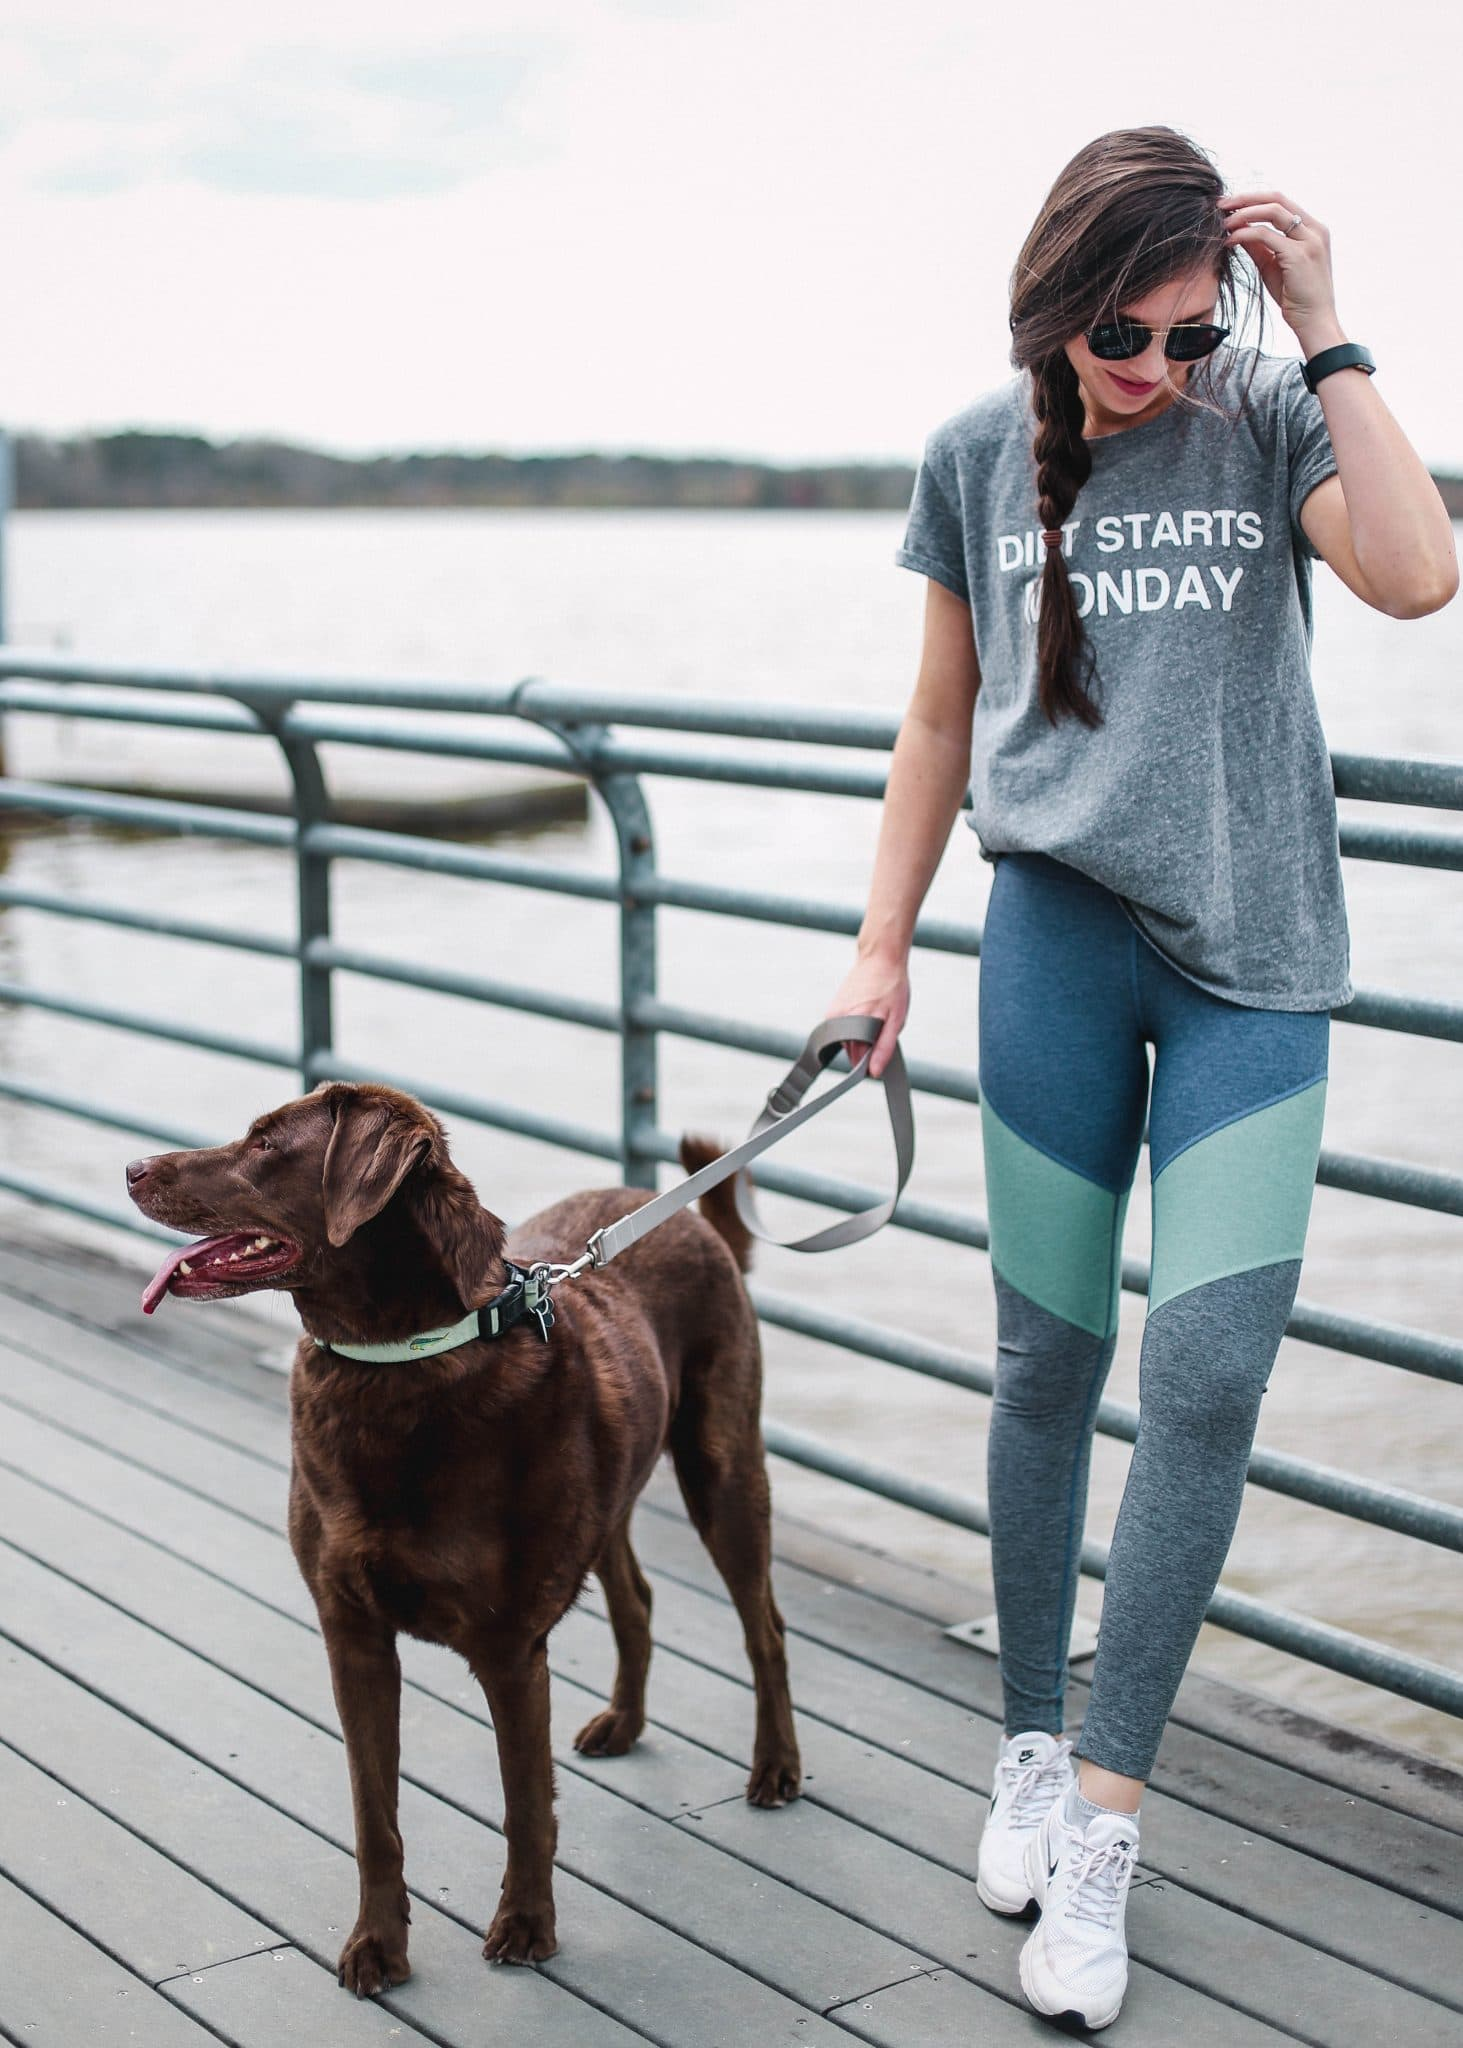 Outdoor Voices leggings, diet starts monday tee, cute workout outfit ideas, spring activewear, onzie mesh leggings and crop top, pretty in the pines blog